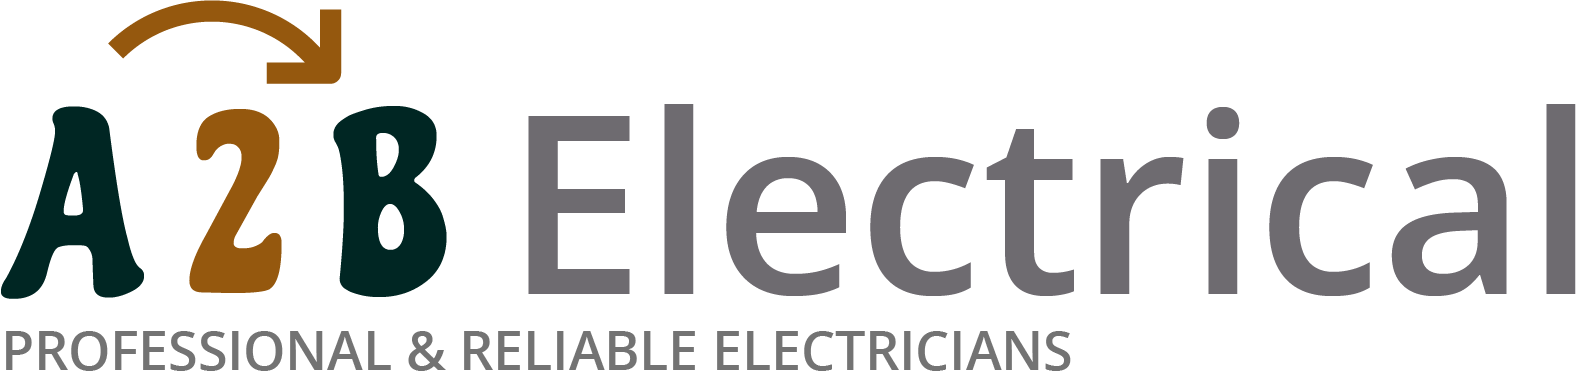 If you have electrical wiring problems in Halstead, we can provide an electrician to have a look for you.